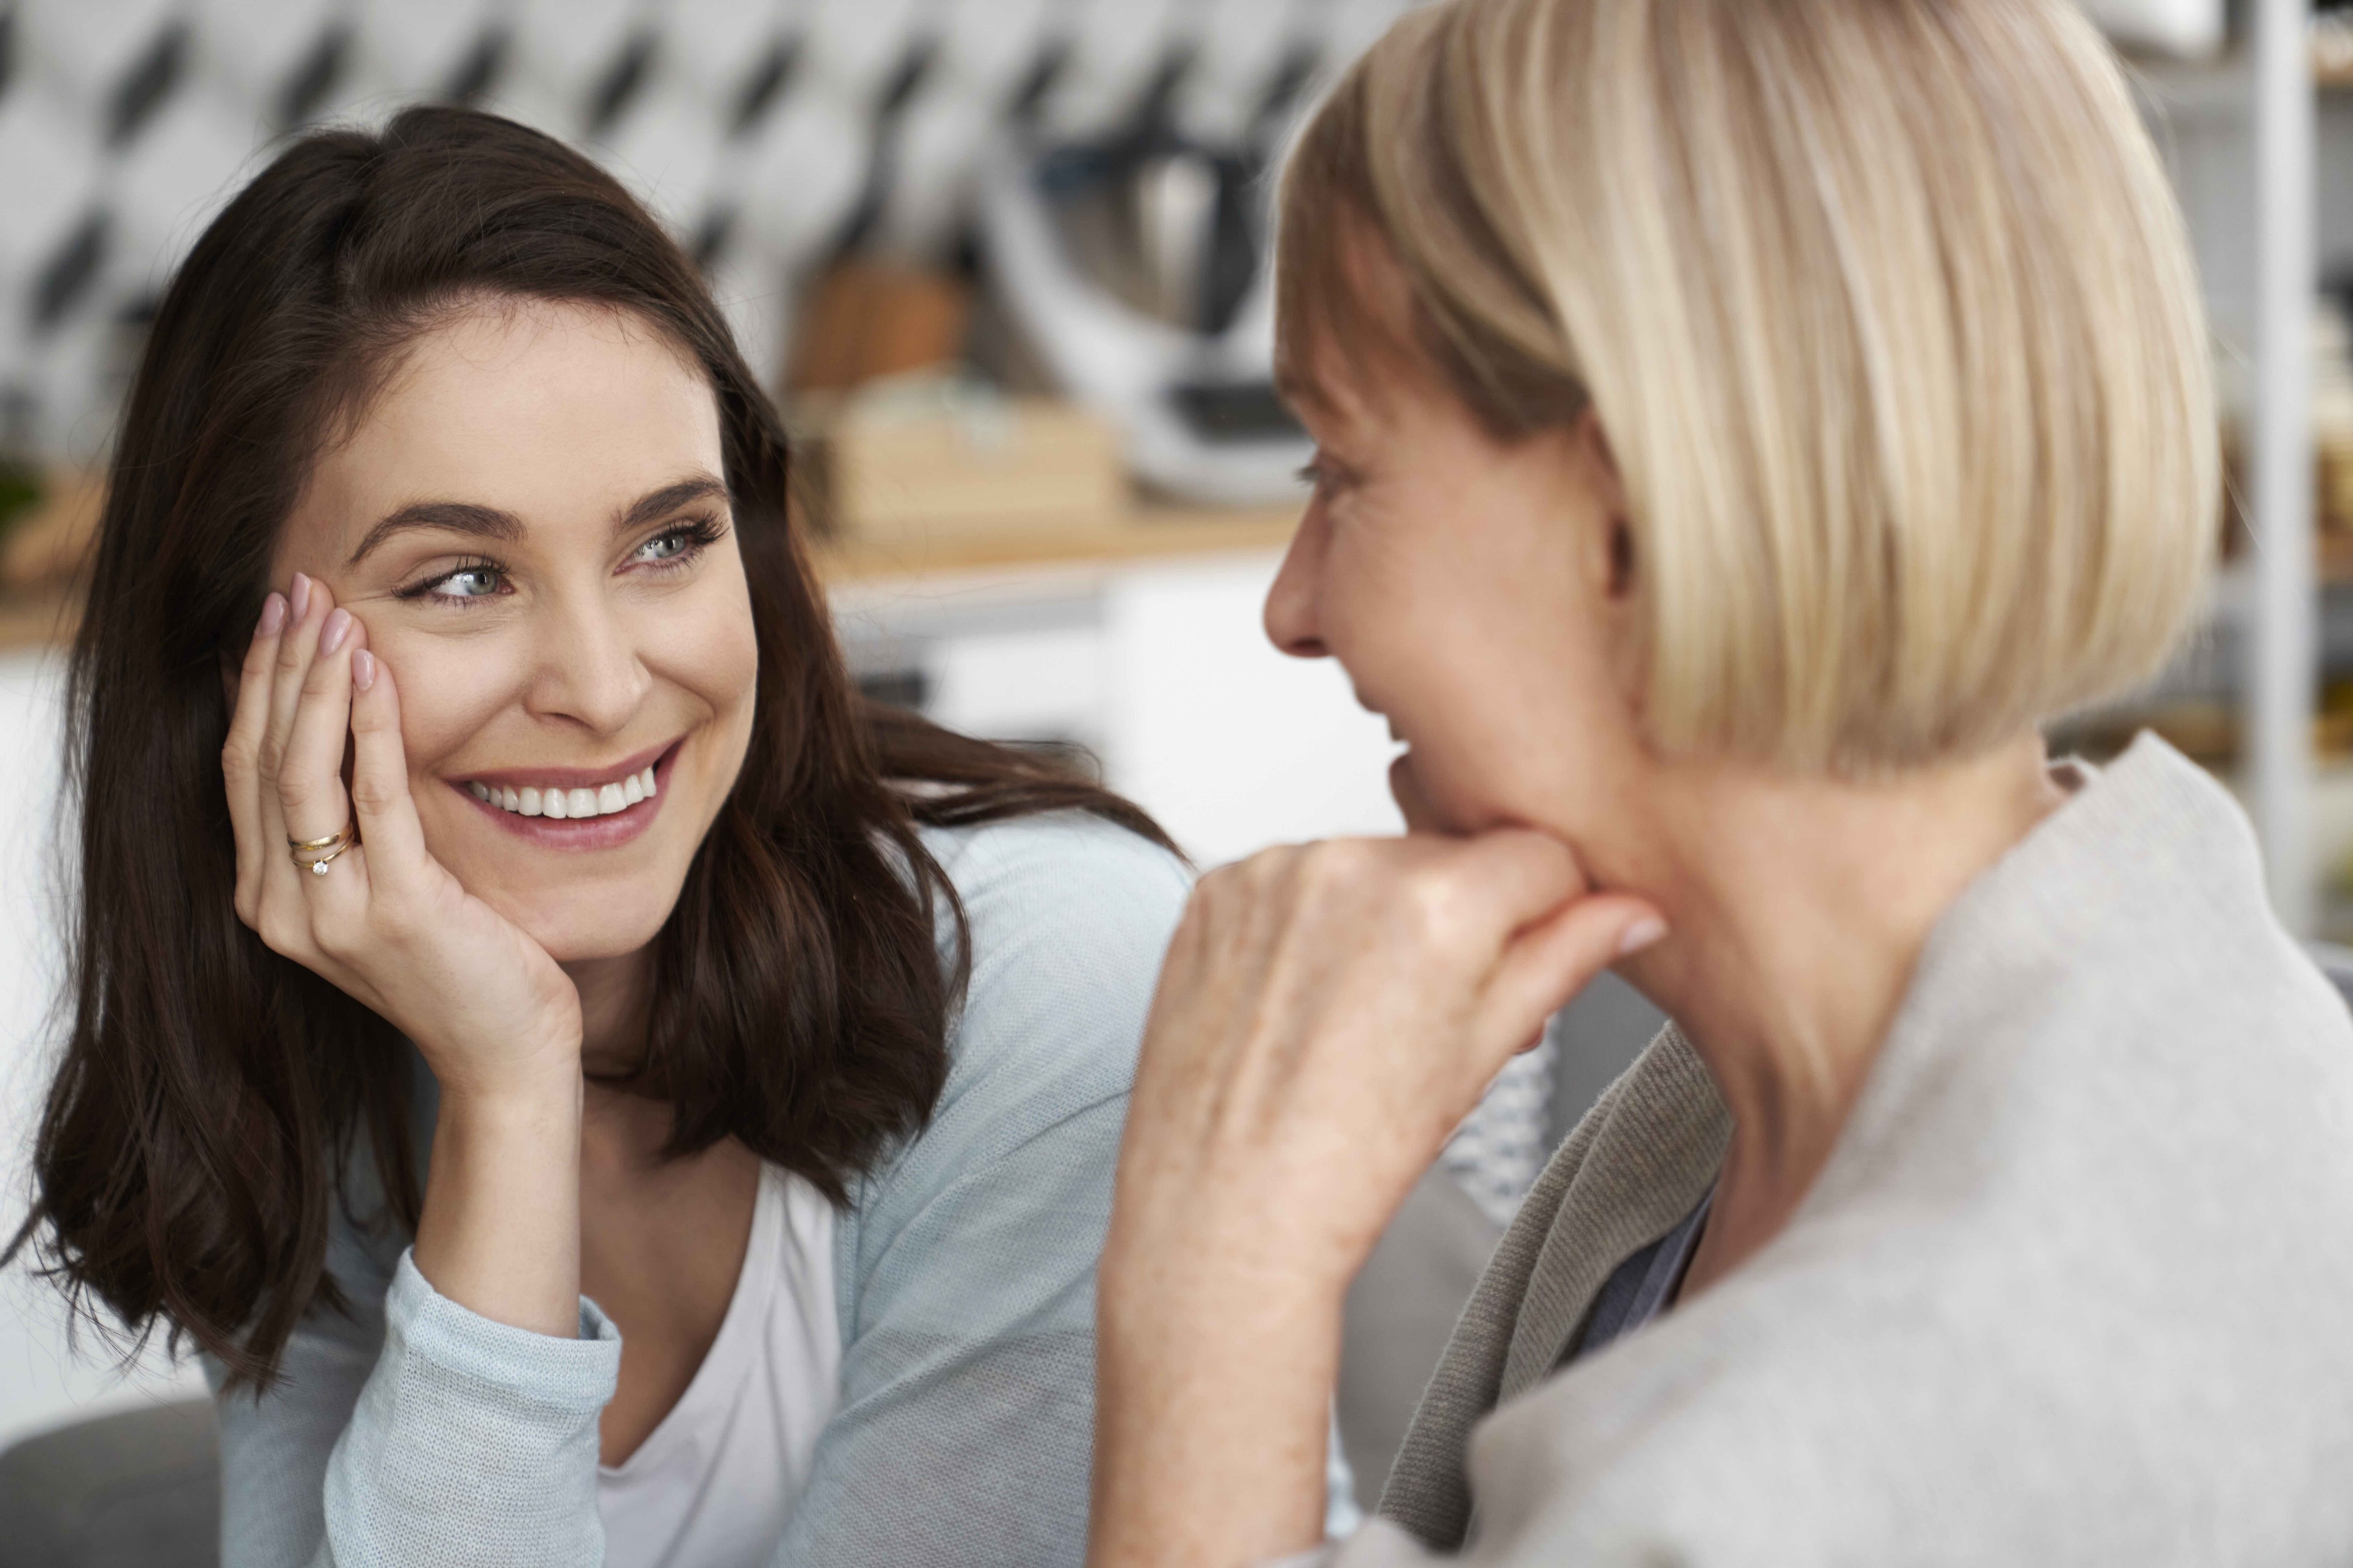 Two women of different ages smile and chat together warmly.